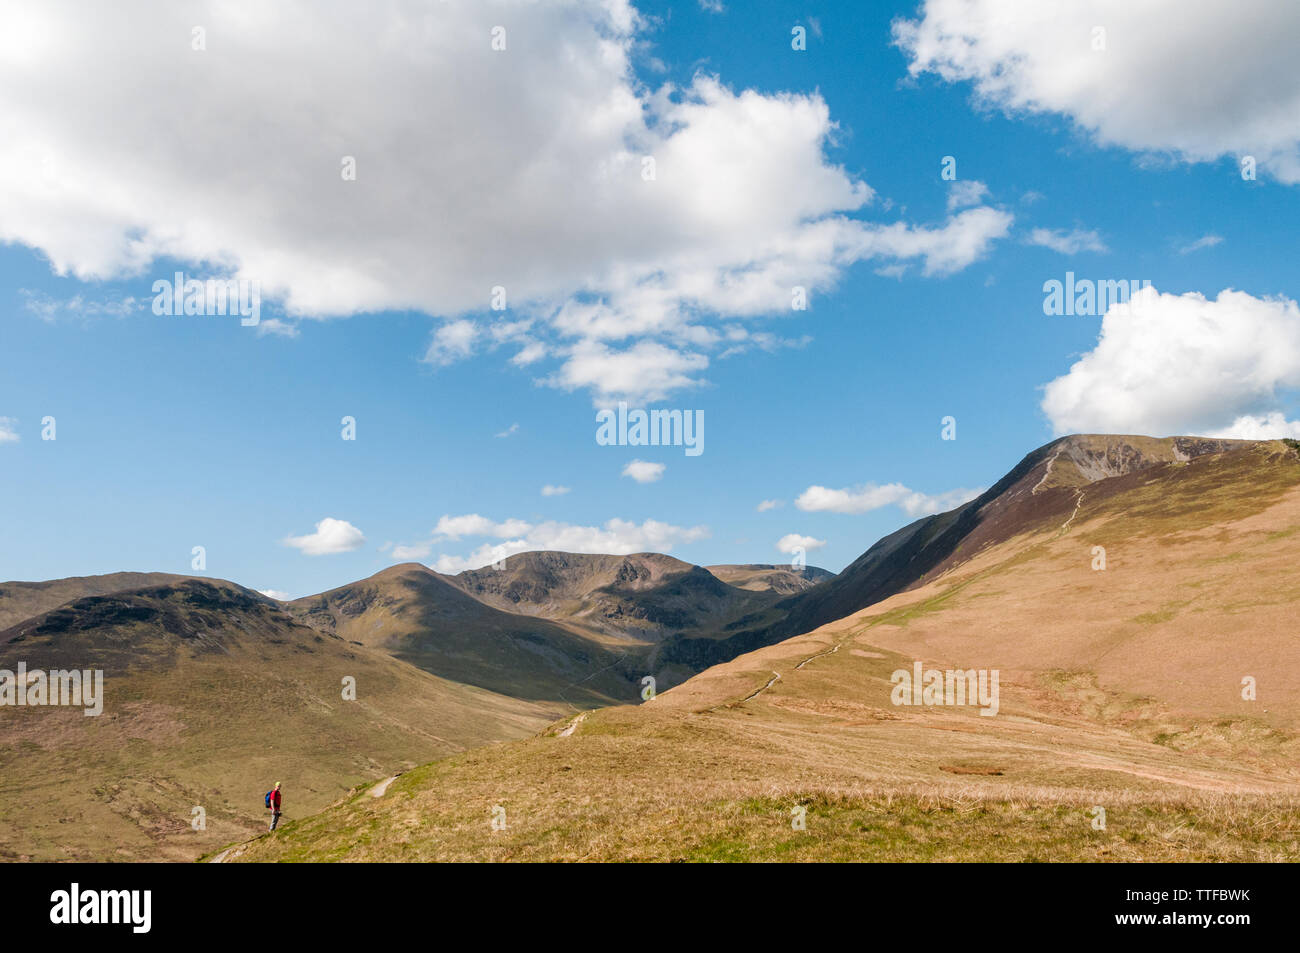 A hillwalker in the Lake District enjoys the view of the Coledale Fells including Grisedale Pike, Outerside, Sail and the summit of Grasmoor in the di - Stock Image